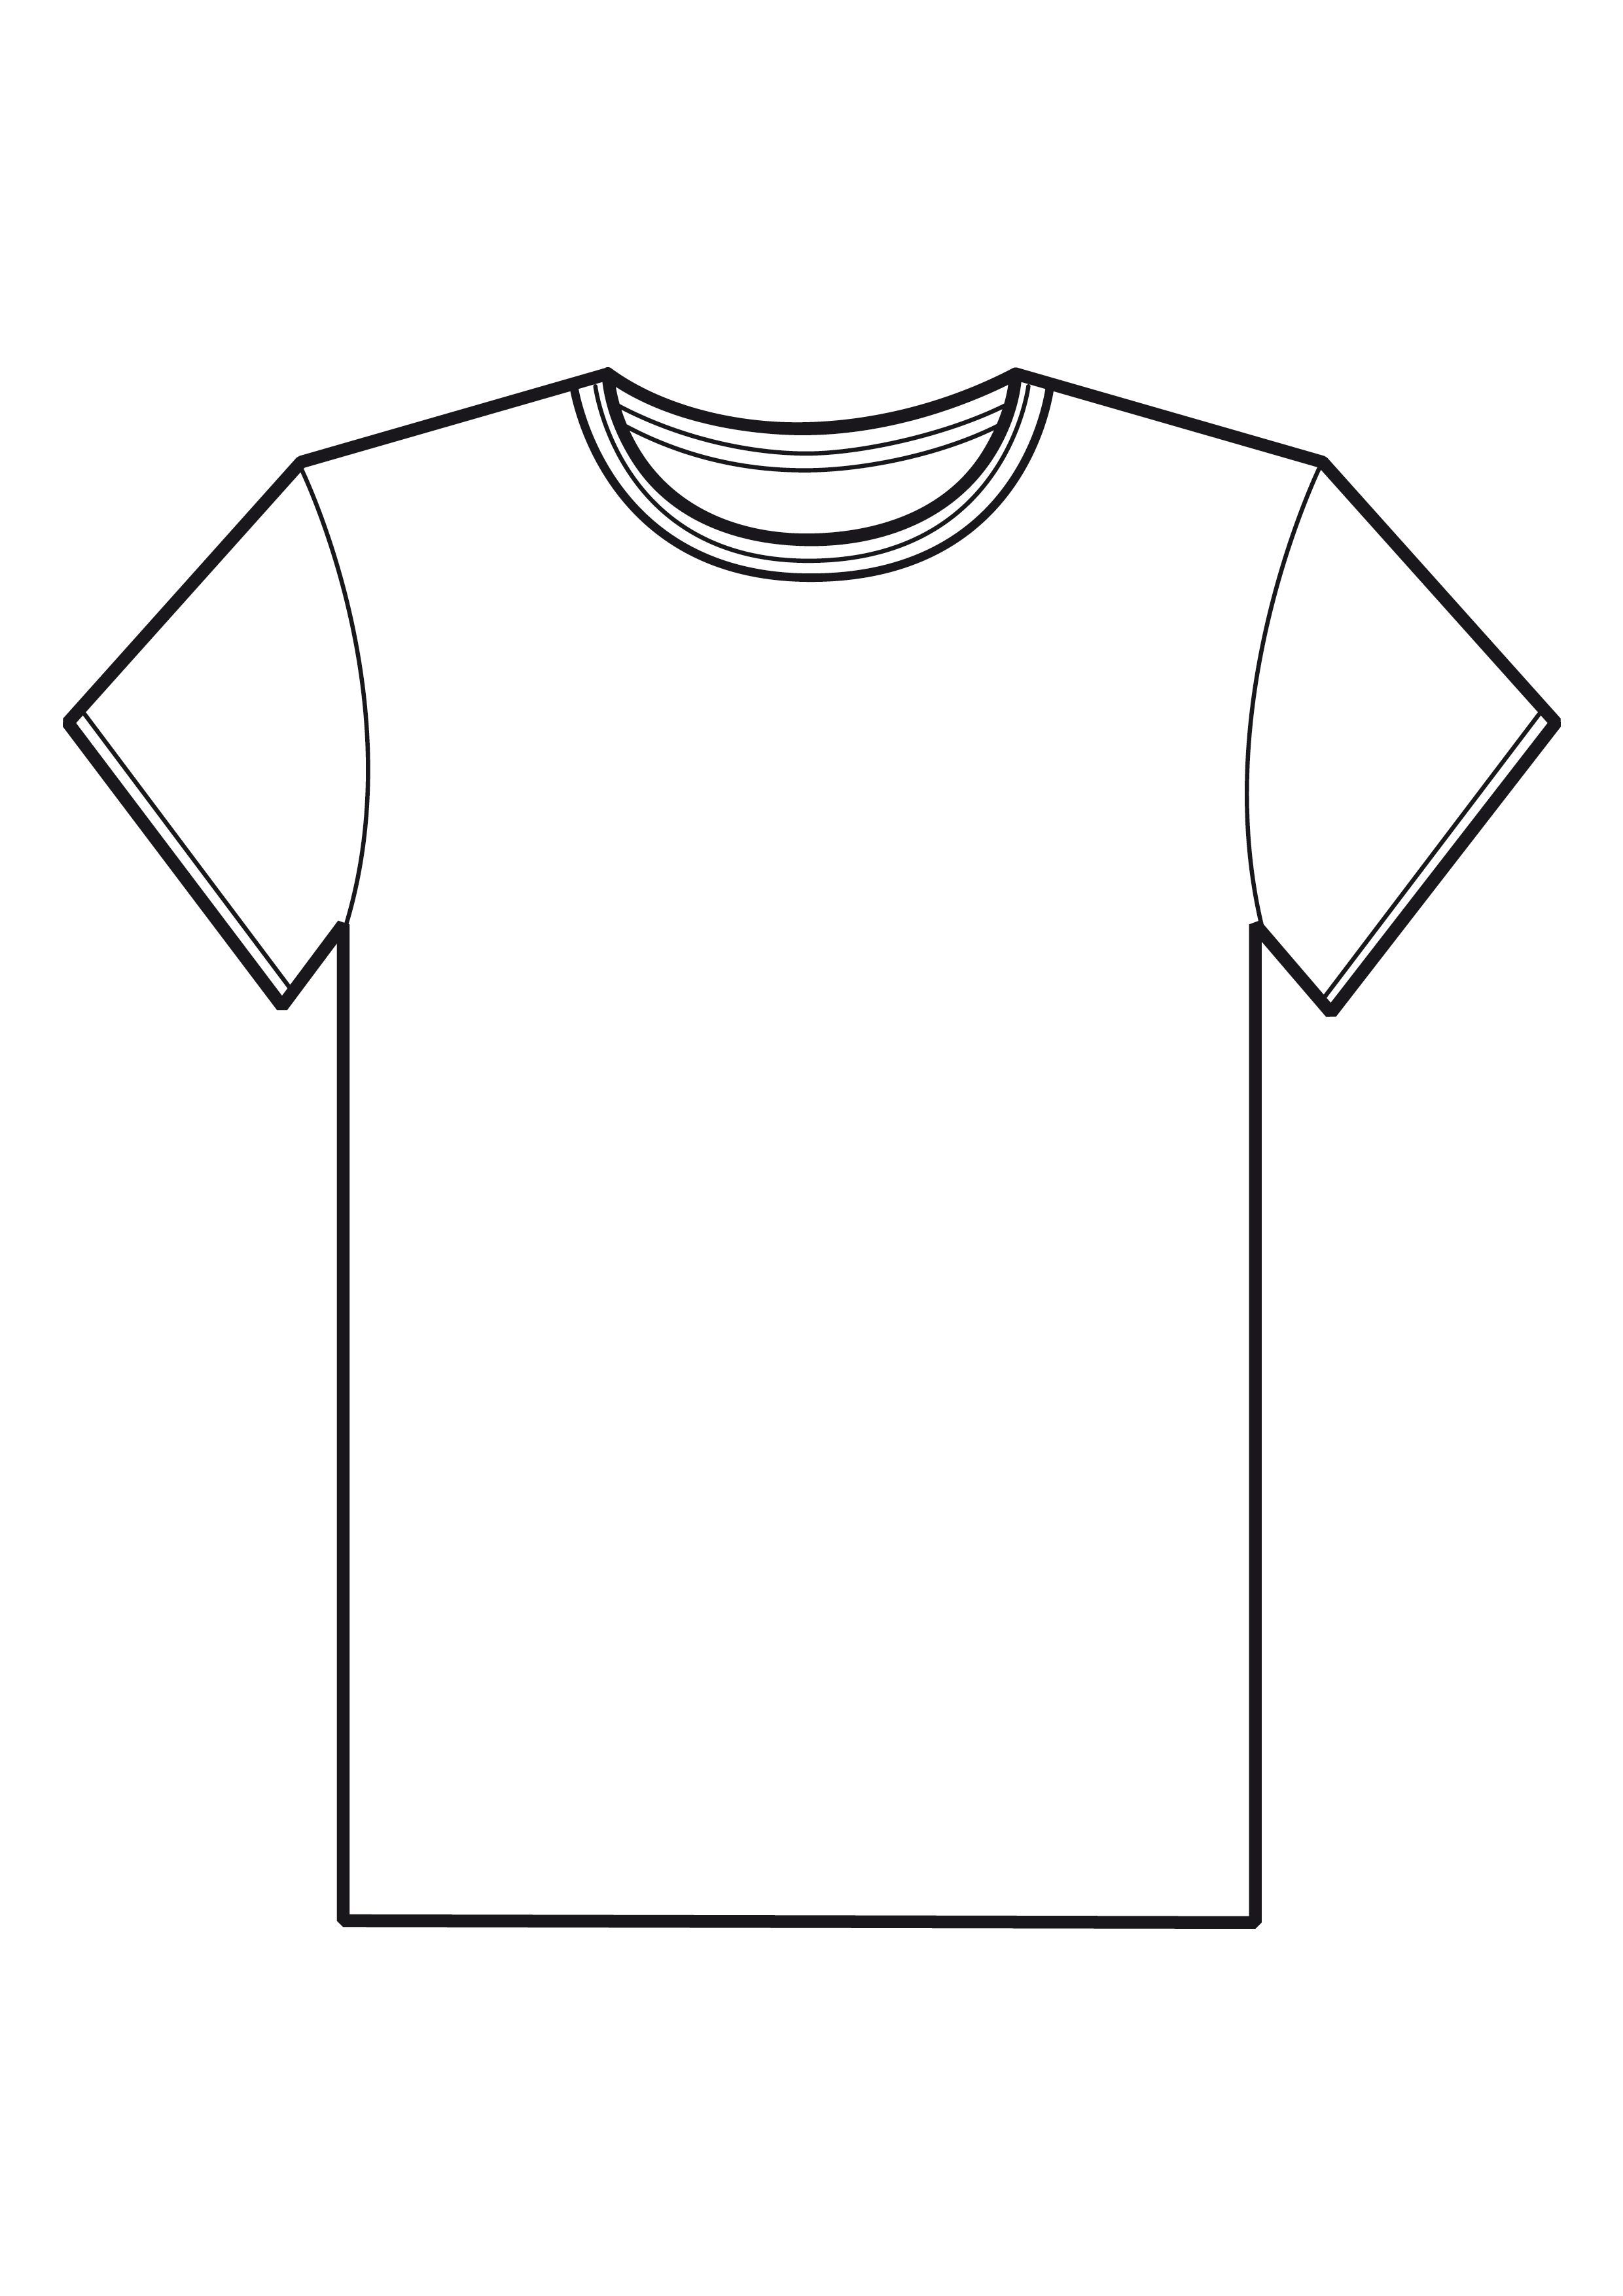 2491 Views Blank T Shirts Coloring Pages T Shirt Picture